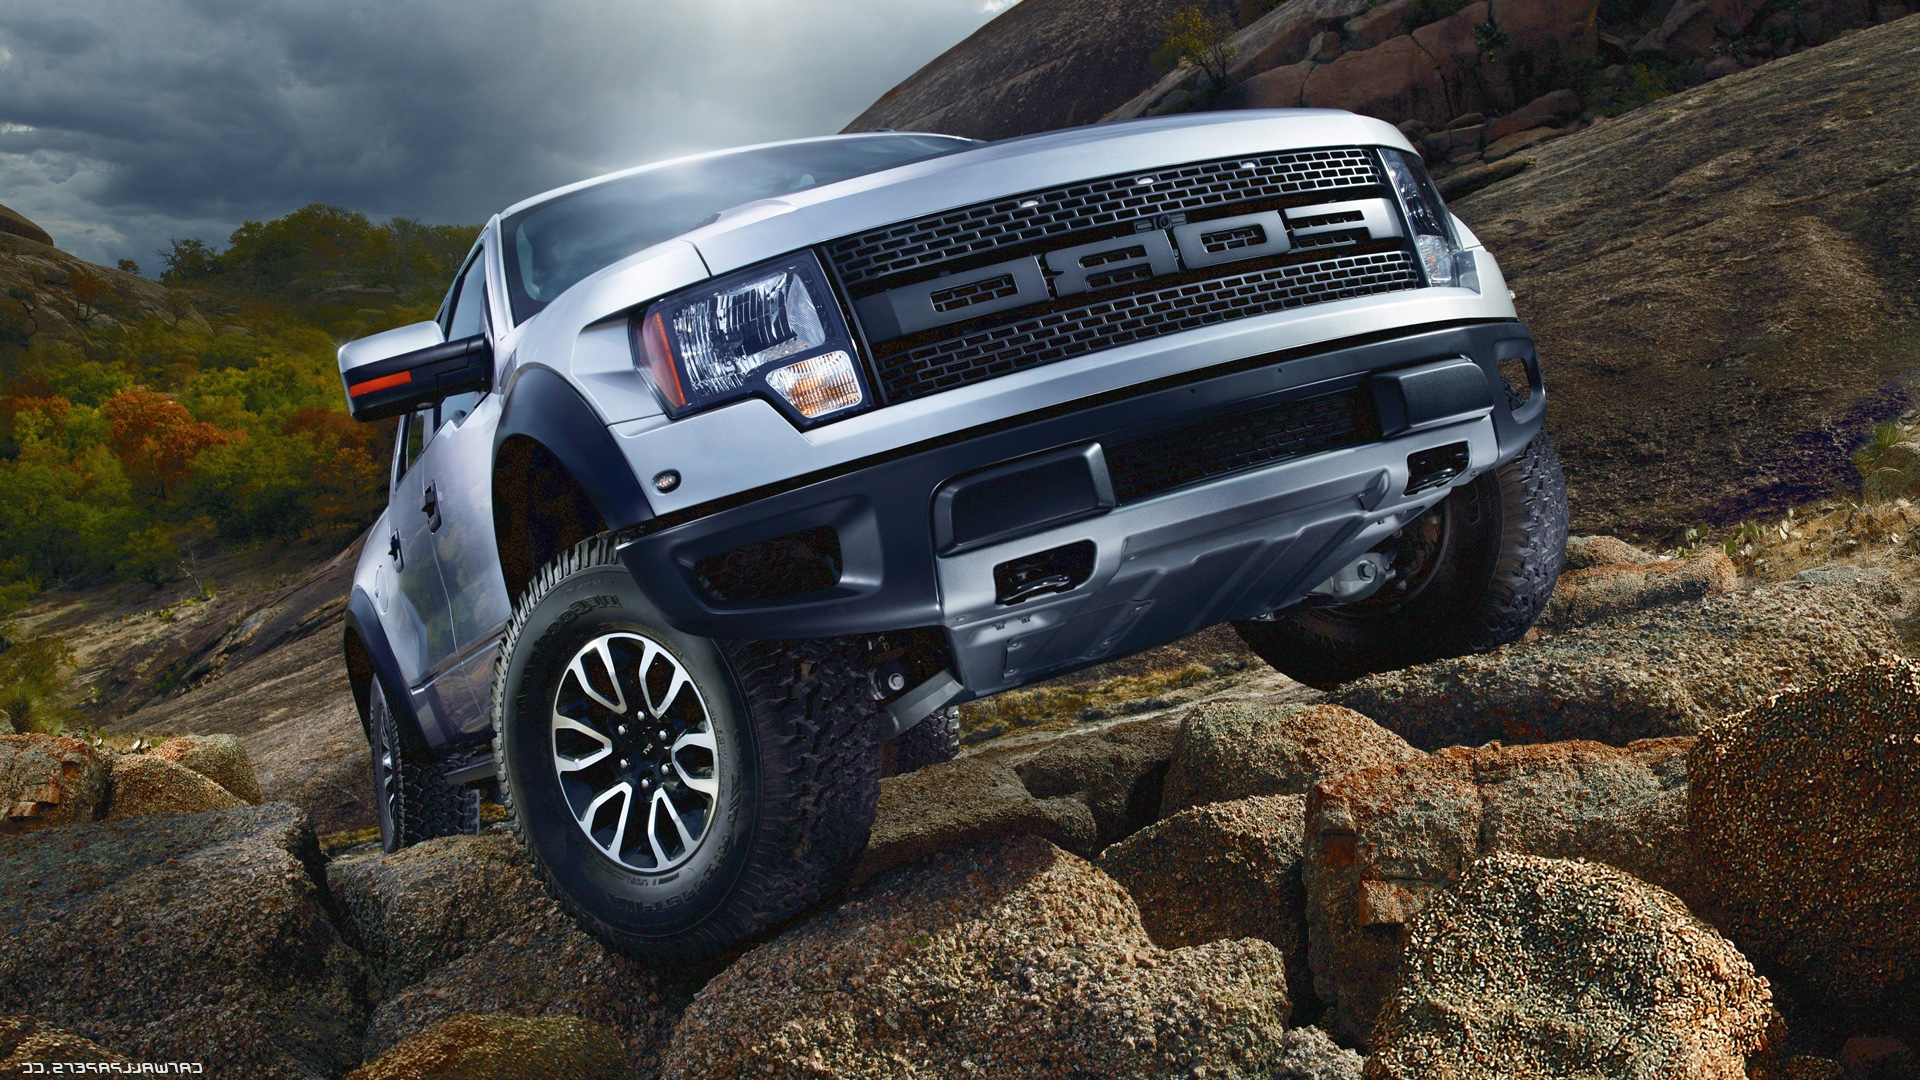 Best Ford F150 Raptor Wallpaper iPhone 0561 Wallpaper with 1920x1080 1920x1080